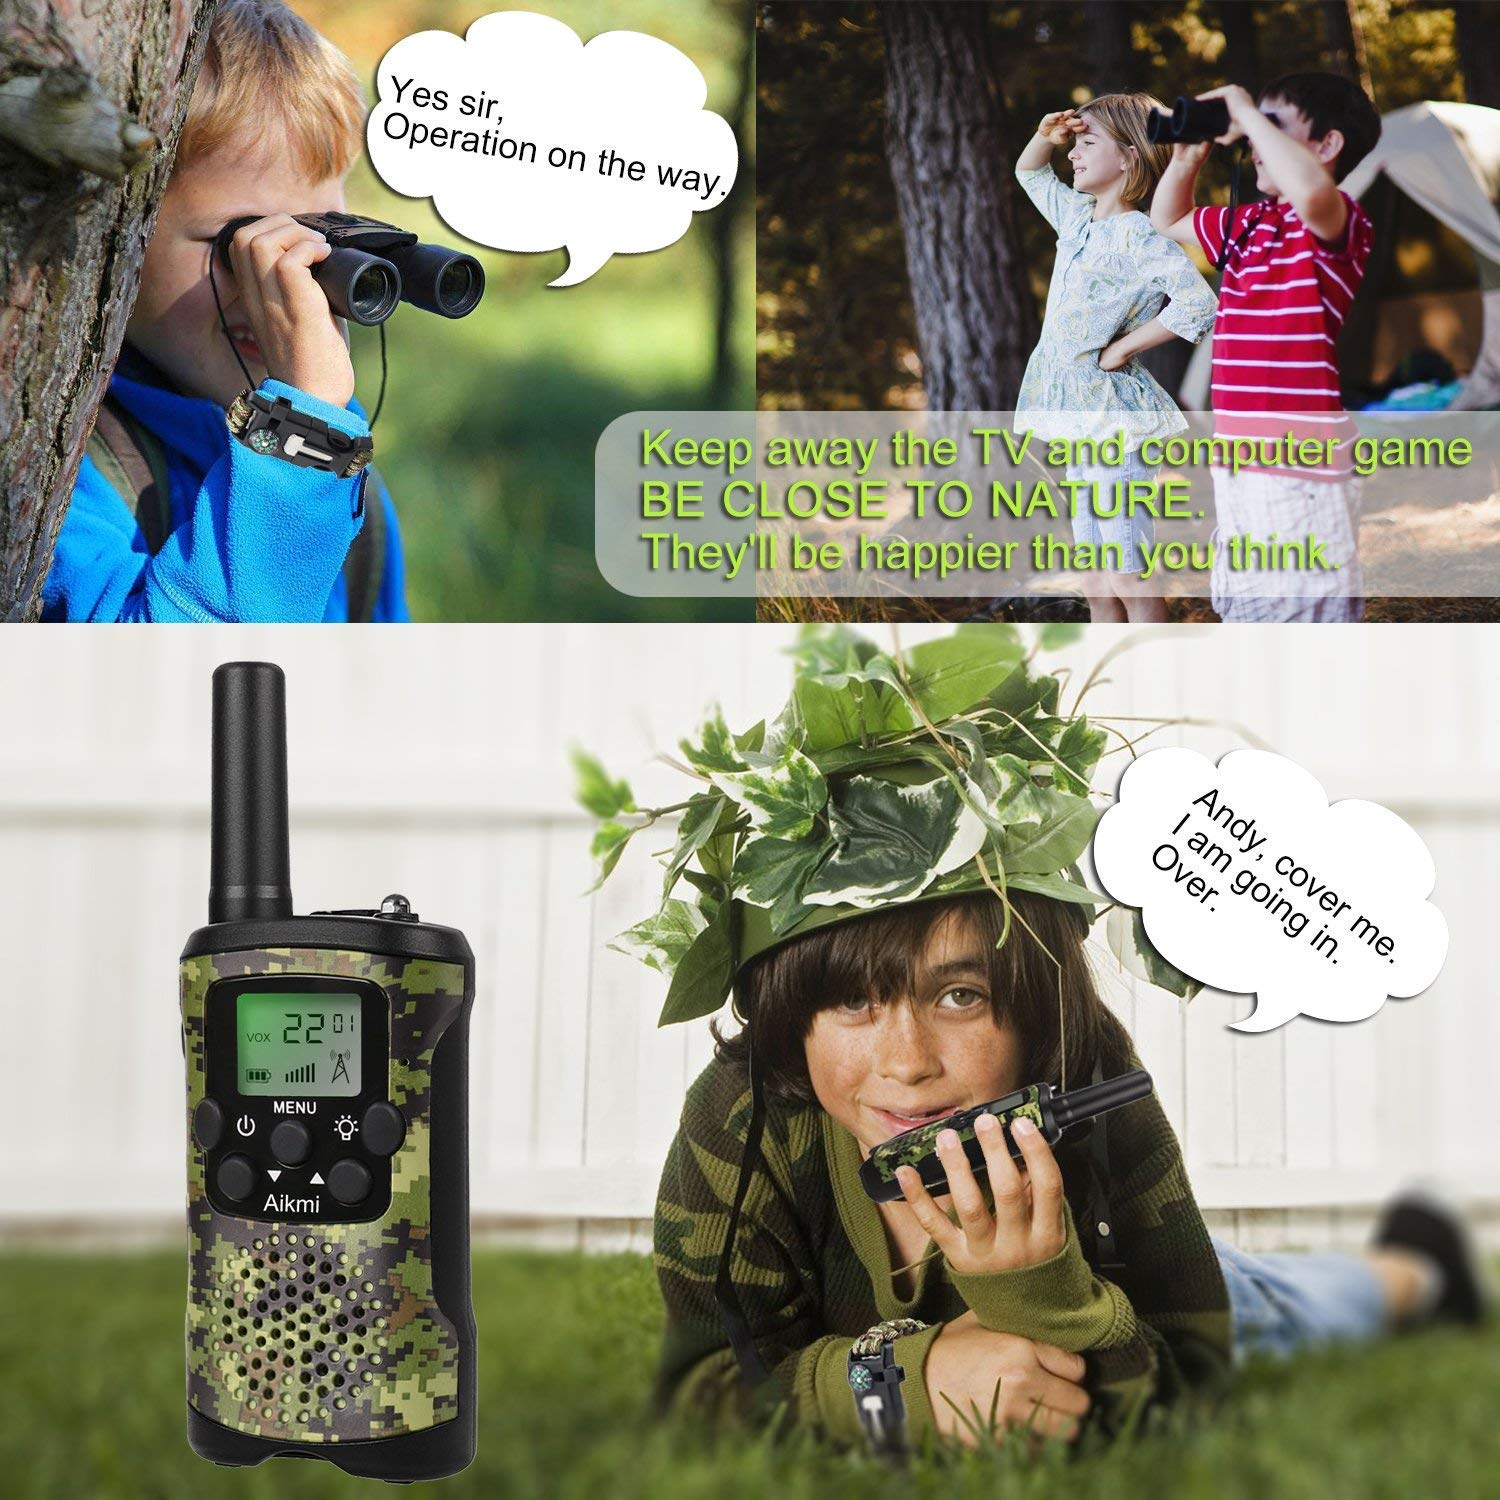 Kids Walkie Talkies Binoculars Toys - Mini Binocular Walkie Talkies for Kids Toy Birthday Gift for 4-10 Year Old Boys and Girls Fit Games, Adventure and Camping. Compass Included by Aikmi (Image #2)